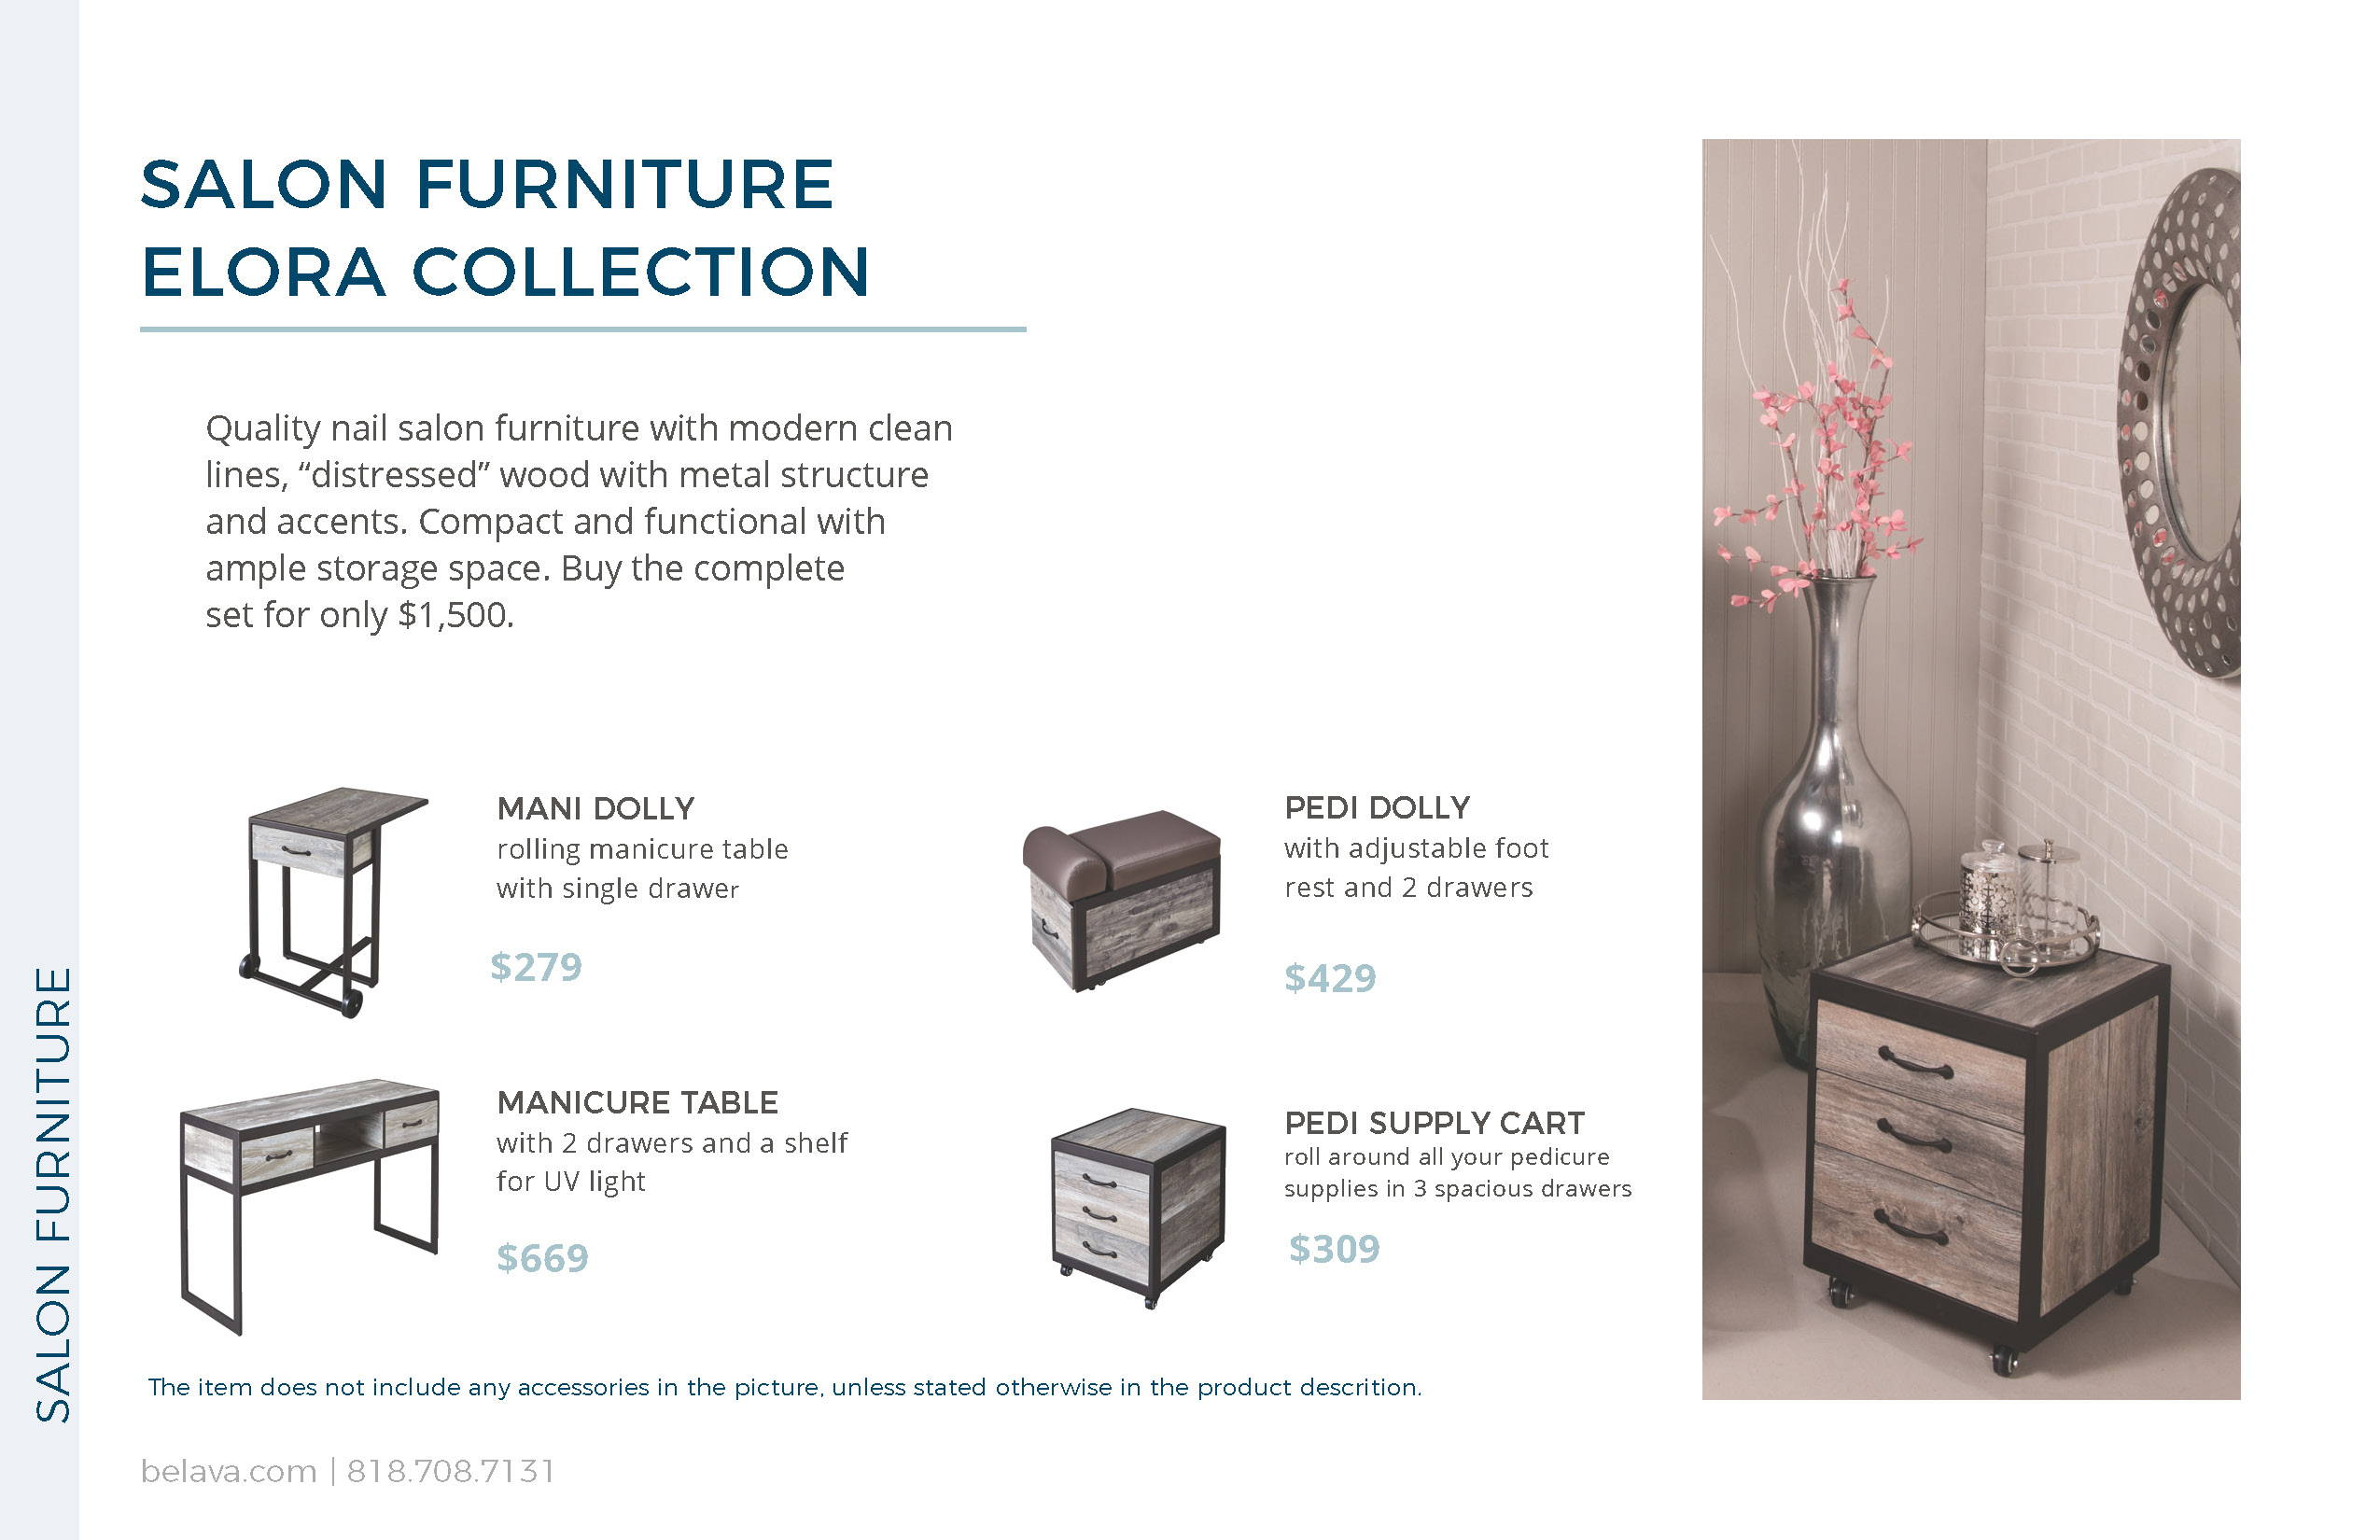 Elora Collection Salon Furniture by Belava